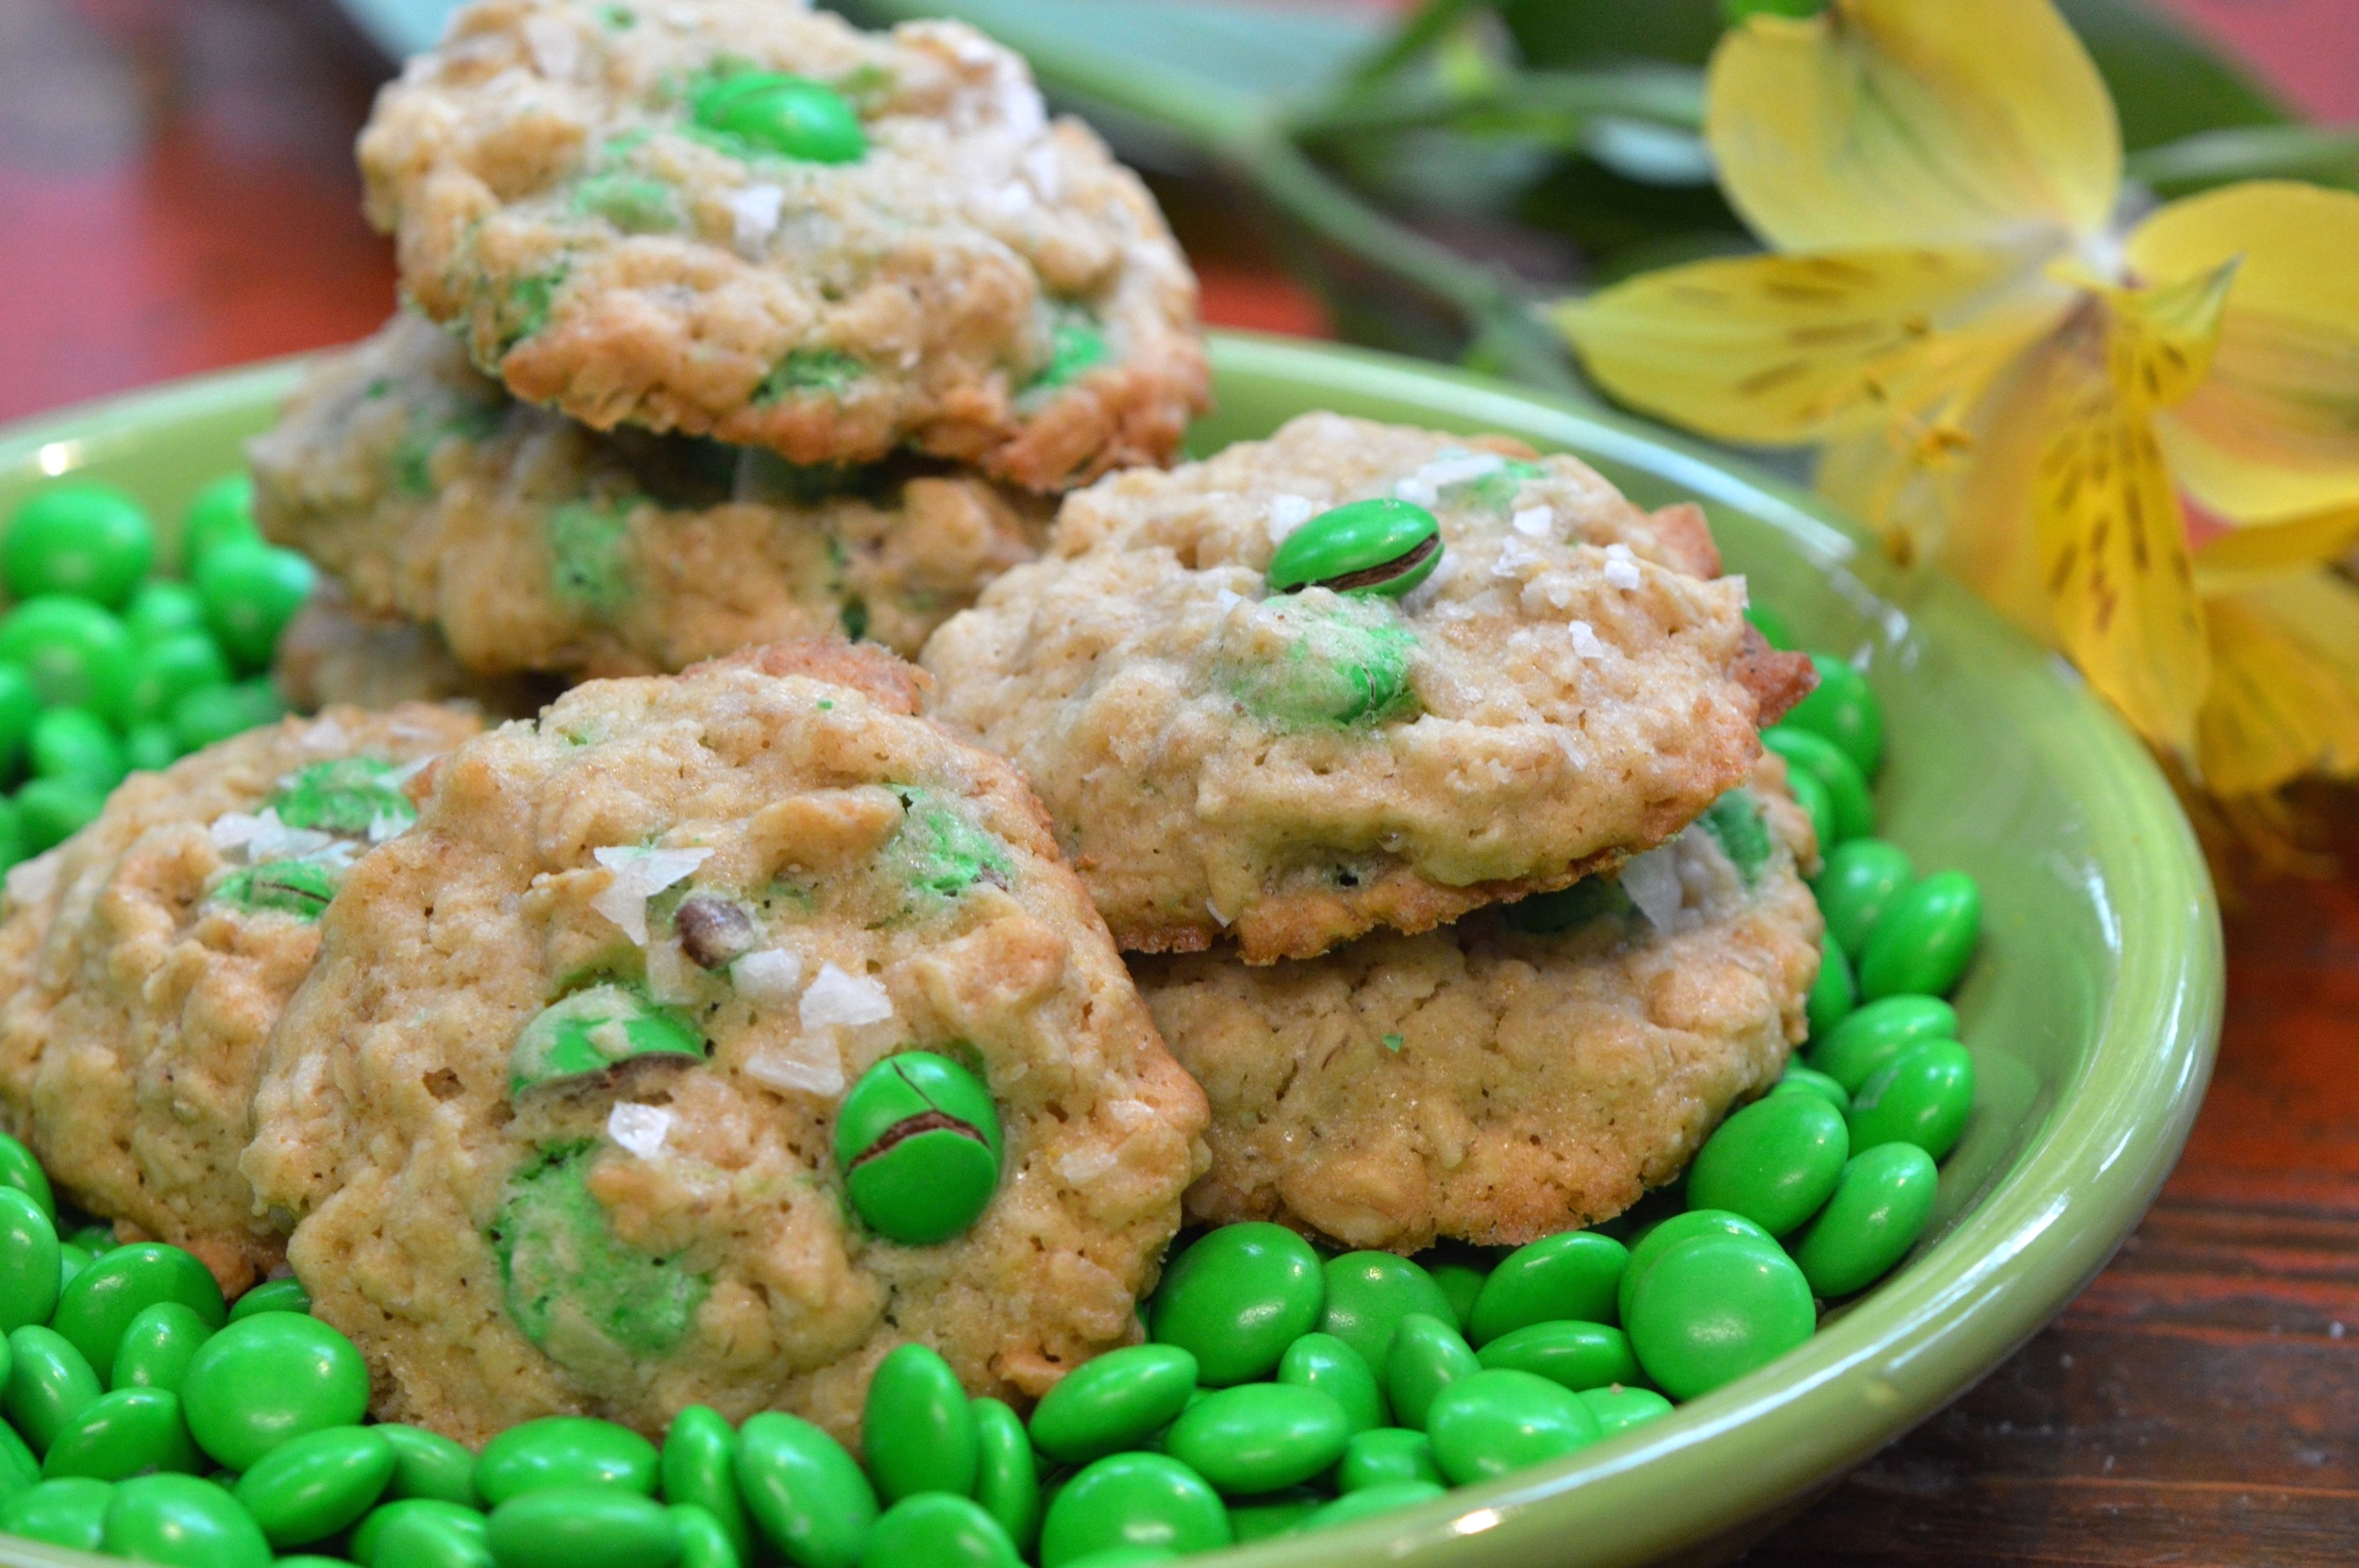 st.paddy's oatmeal chocolate cookie www.cookingbydeisgn.com all rights reserved 2015 copyright 2015